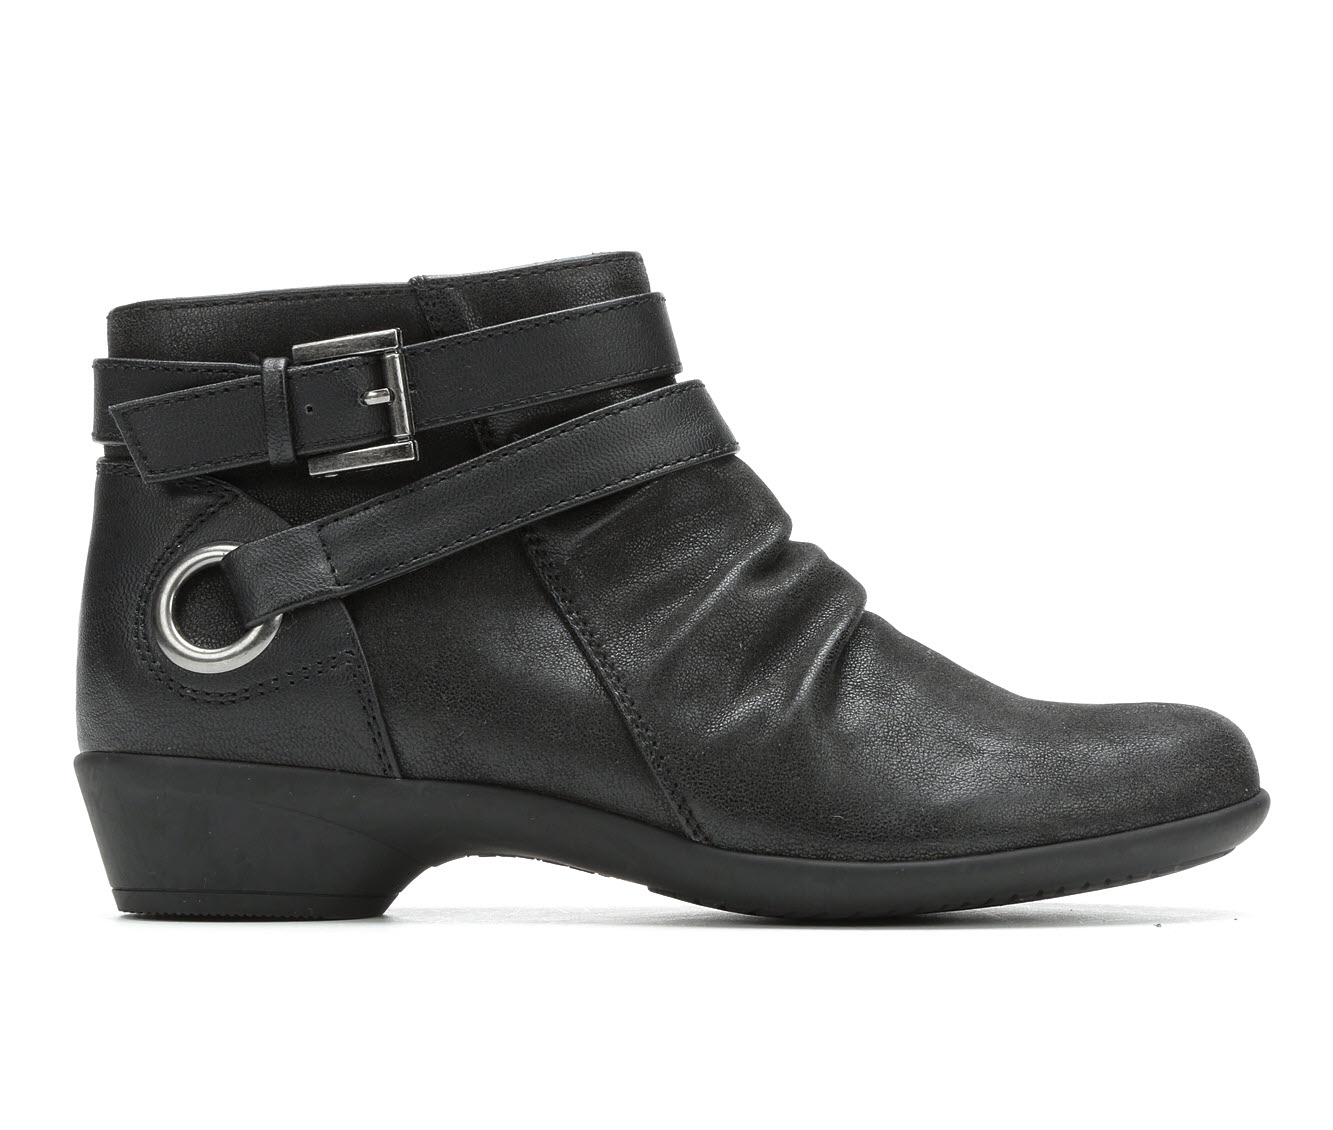 Axxiom Charlotte Women's Boot (Black Faux Leather)